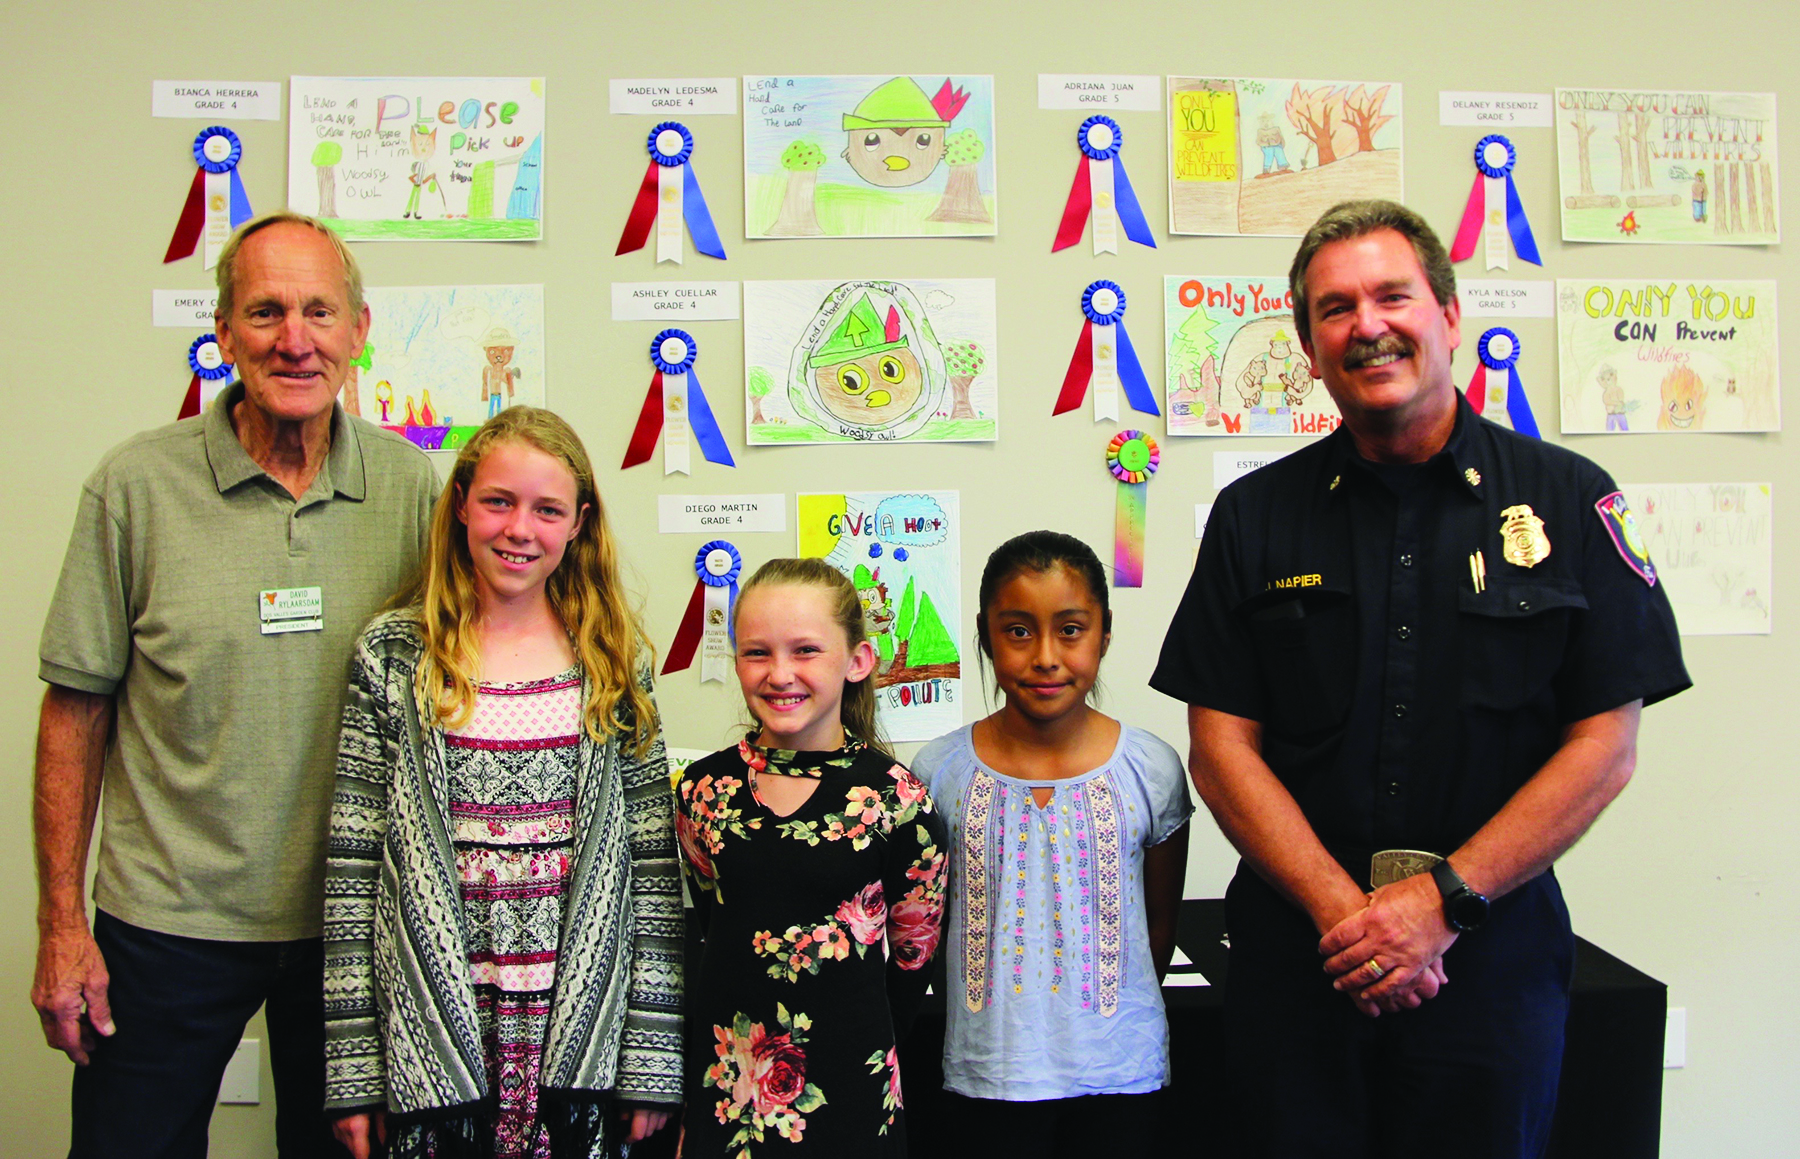 Local girl wins 2nd place in statewide contest | Valley